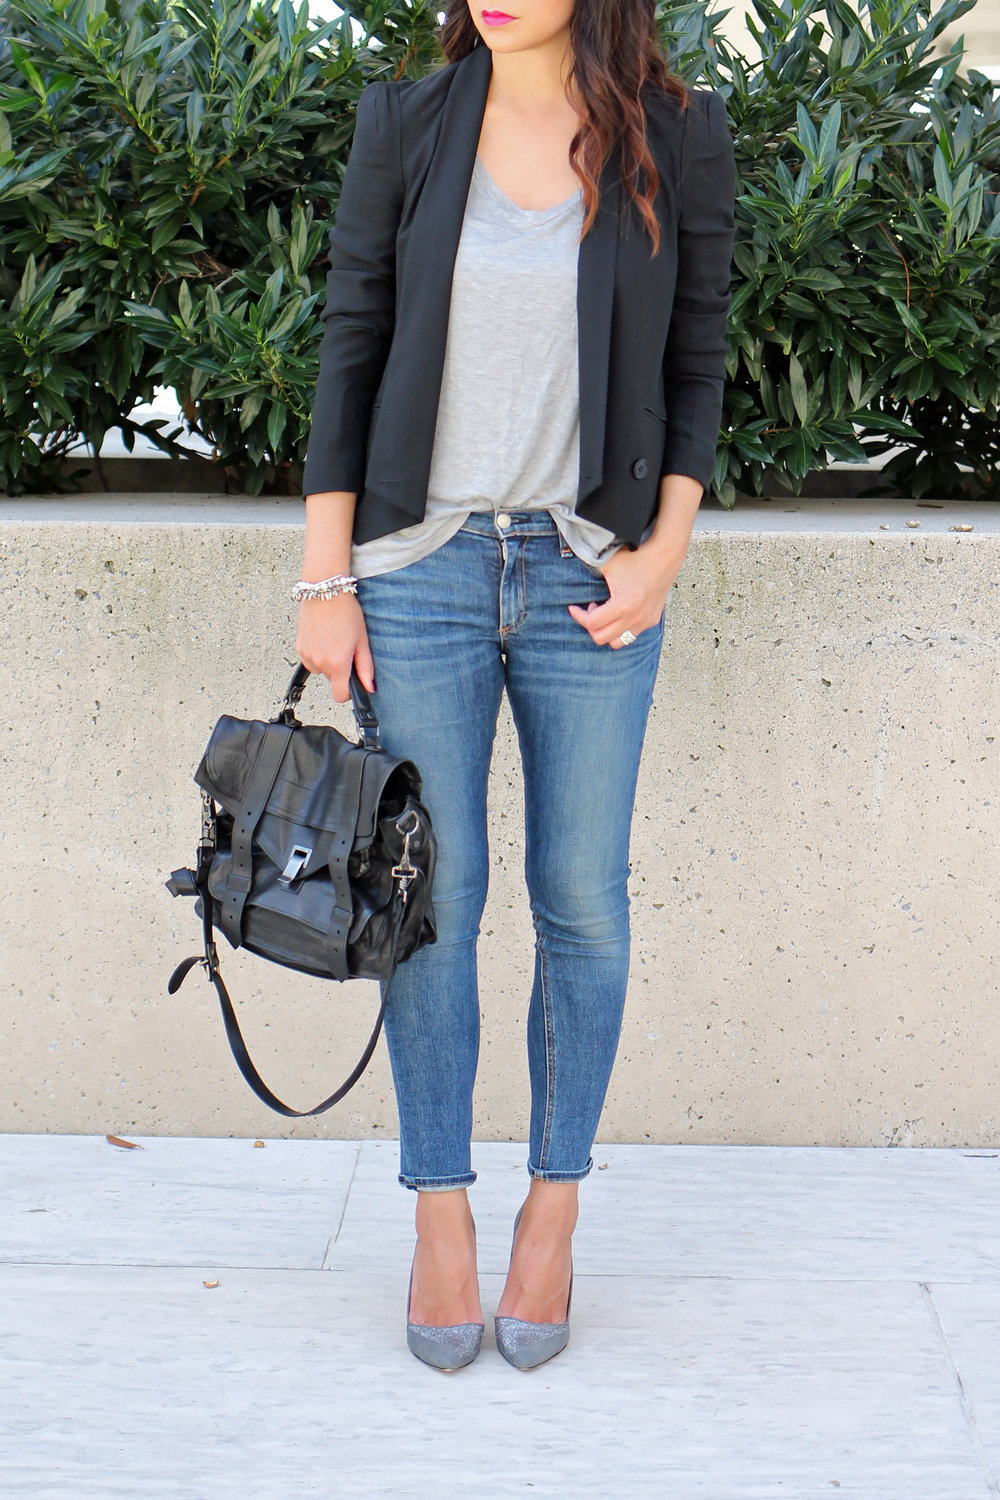 Blazer and jeans outfit